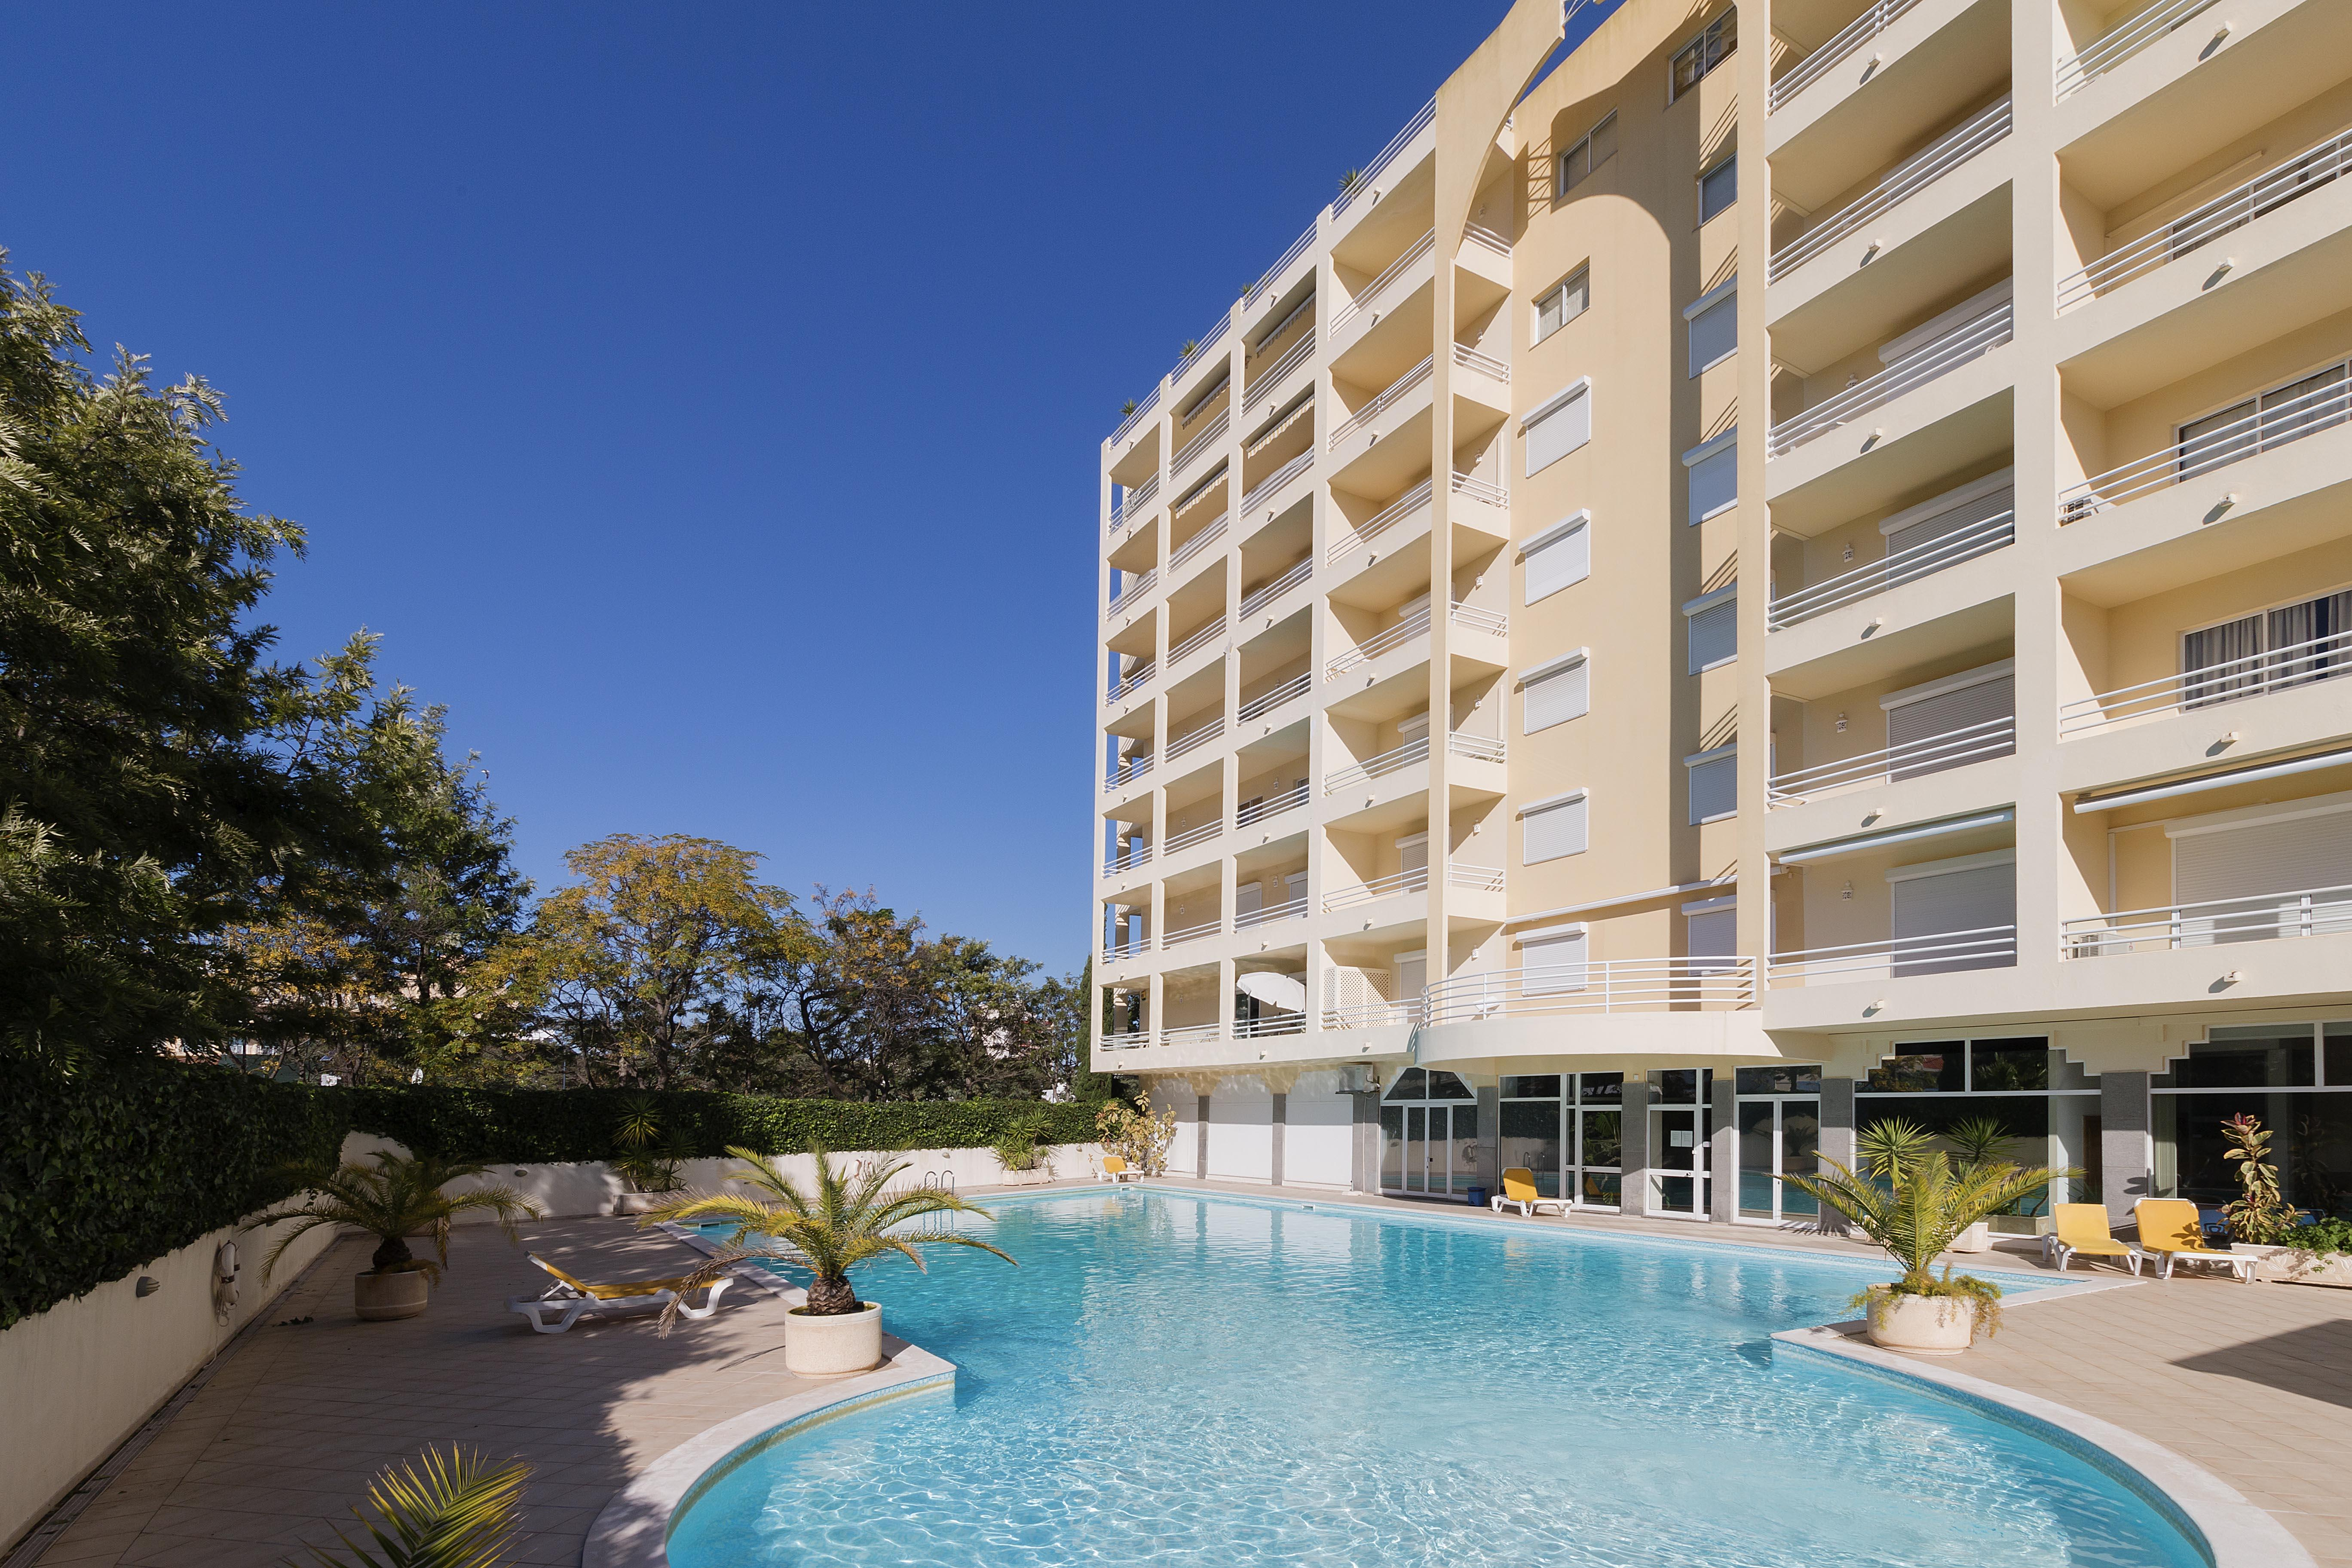 Apartment for Sale at Flat, 3 bedrooms, for Sale Loule, Algarve, Portugal